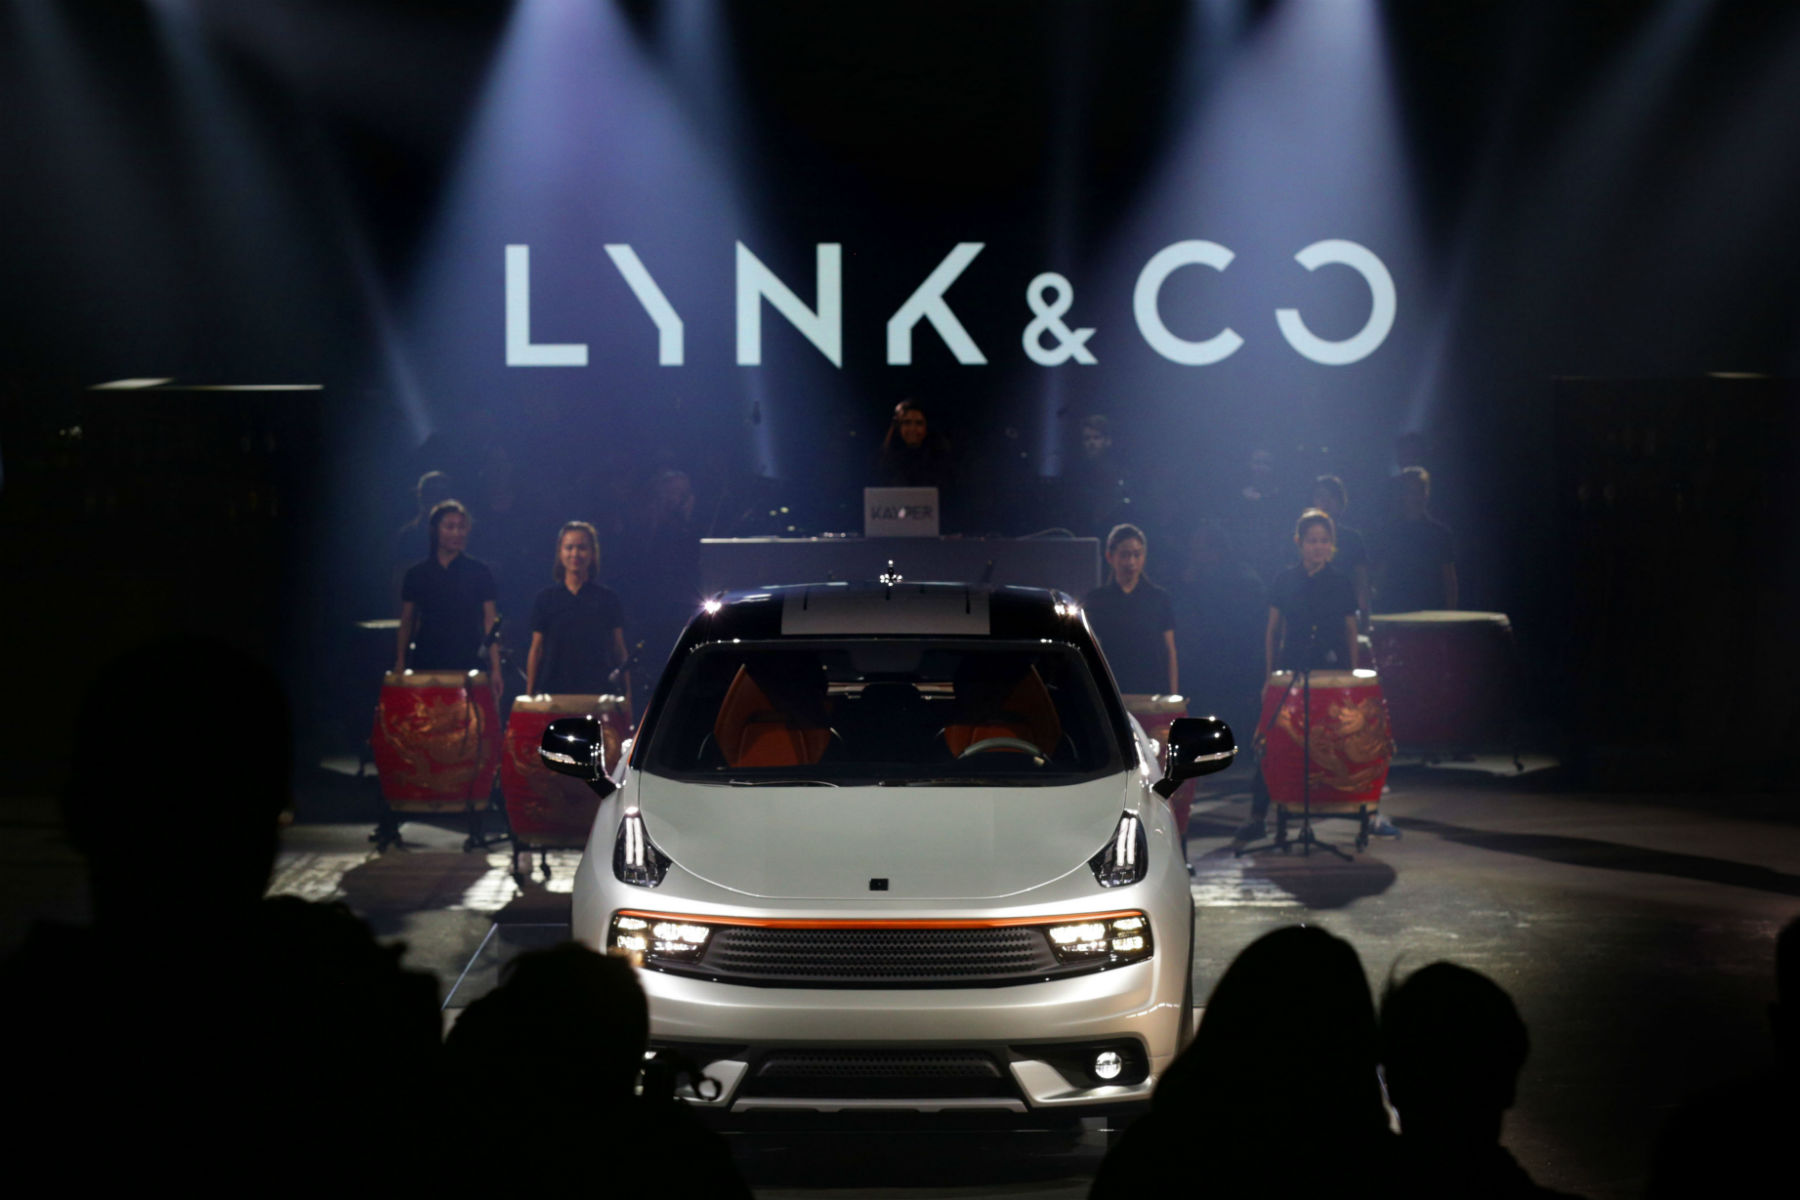 Tell me more about Lynk & Co's sales platform